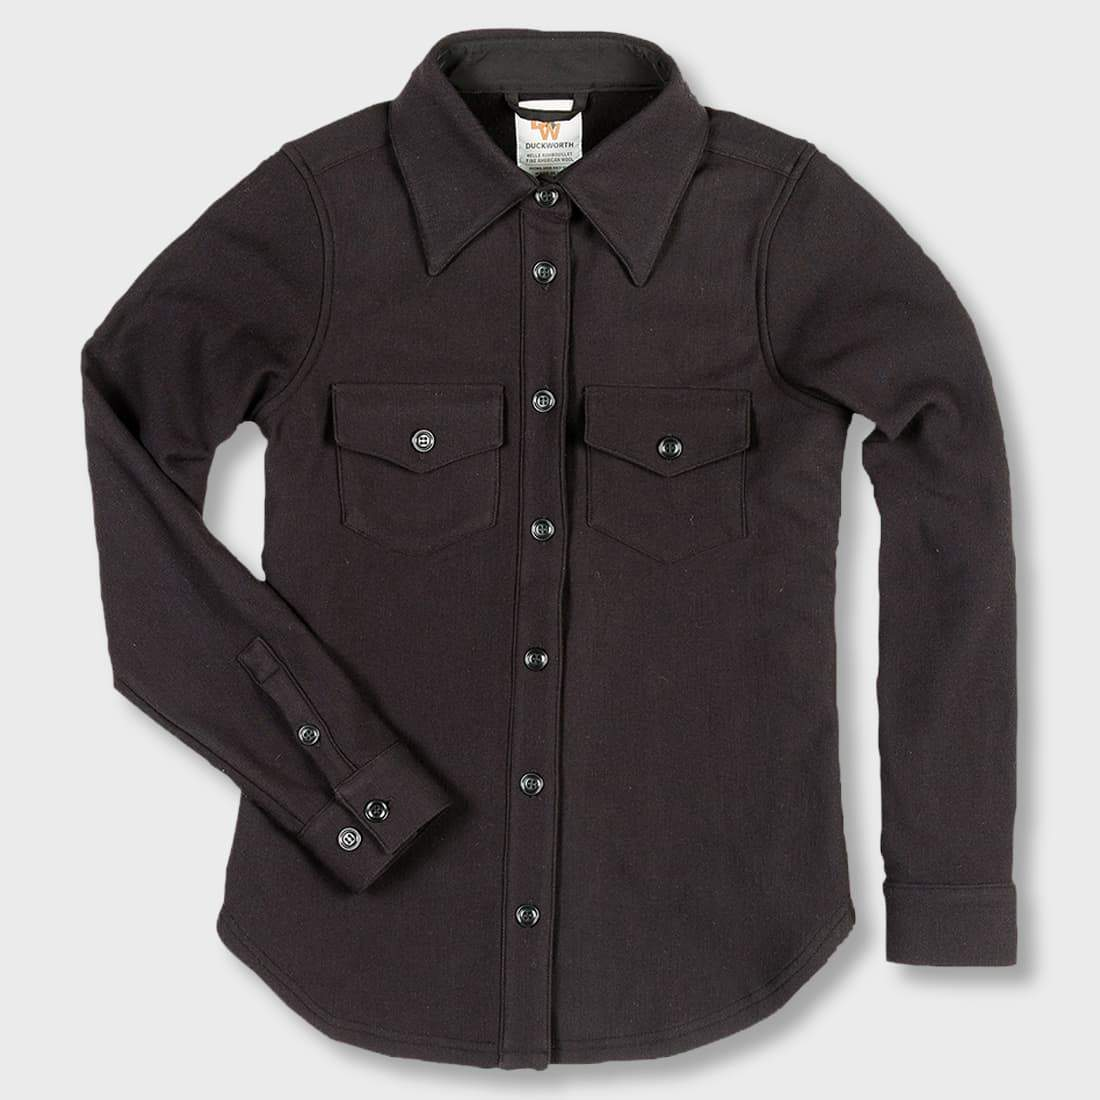 Duckworth Women's Powder Hi-Line Shirt Black